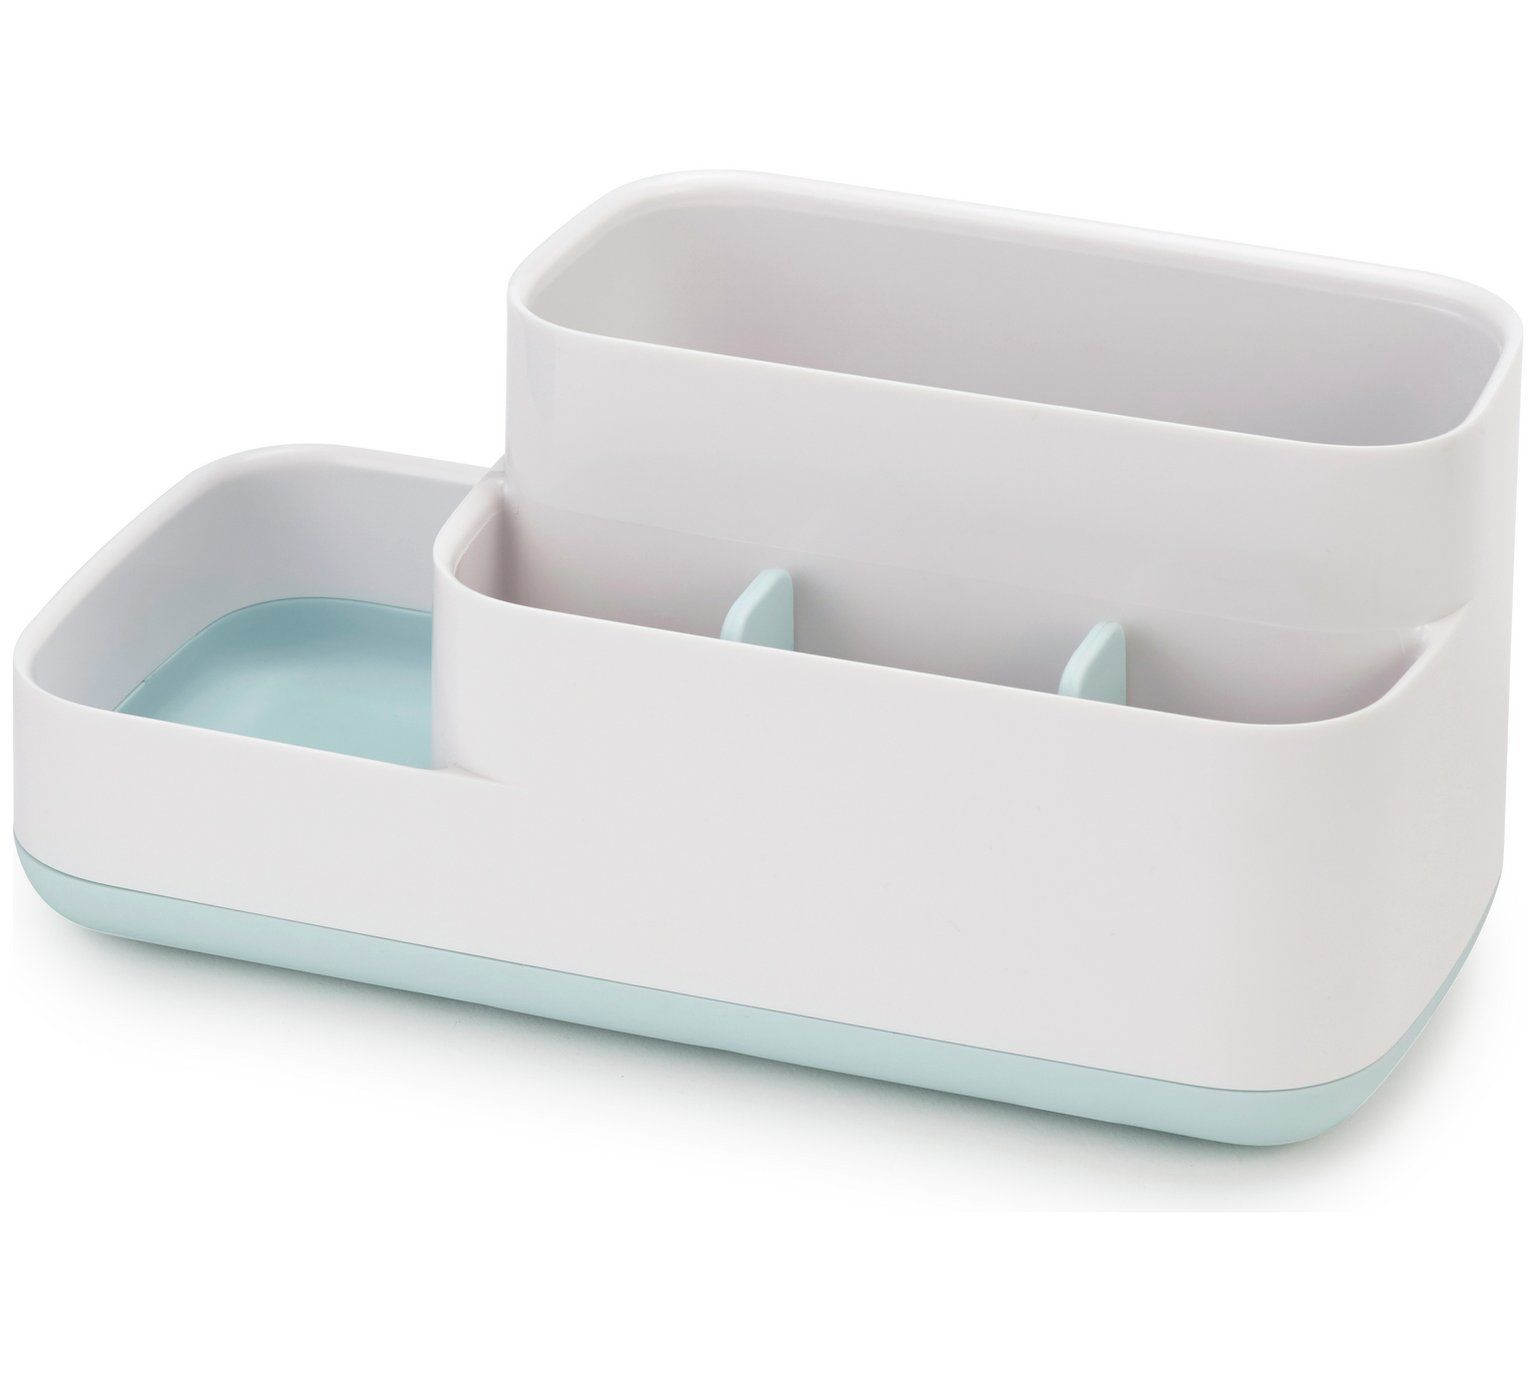 Joseph Joseph Easy Store Bathroom Caddy - White